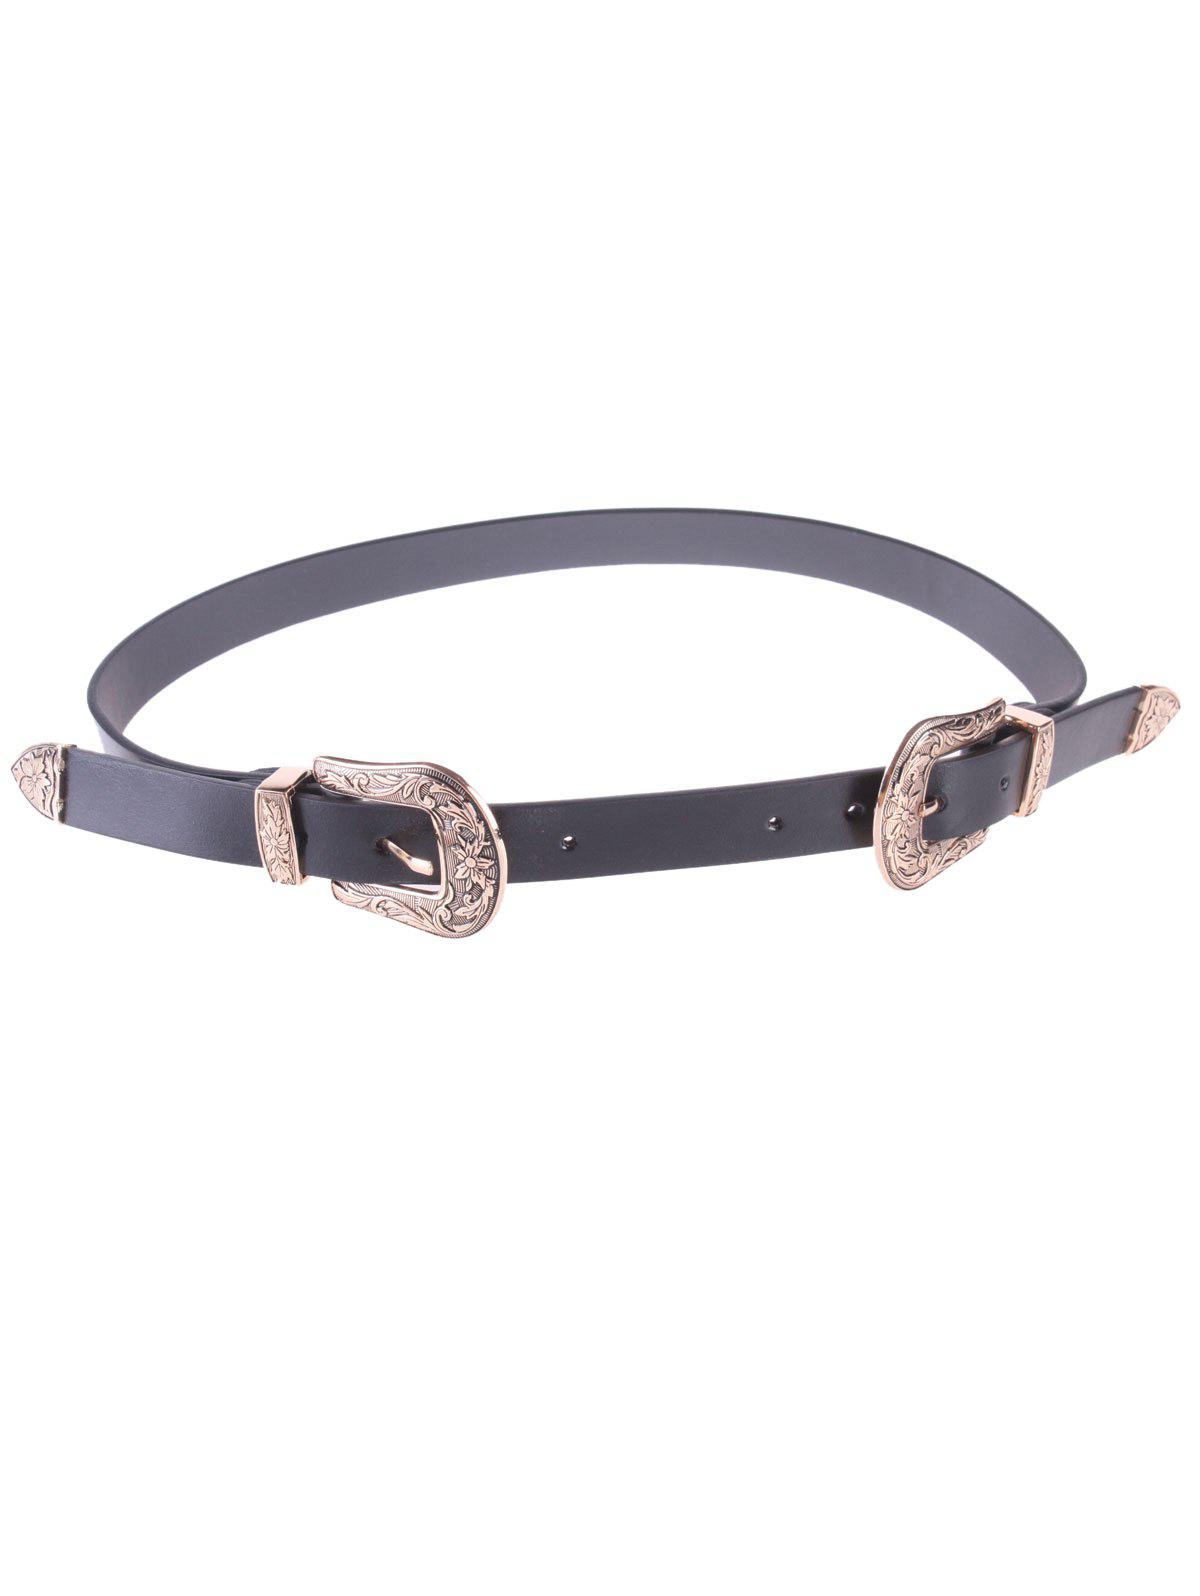 Chic Double Buckles Waist Belt - BLACK